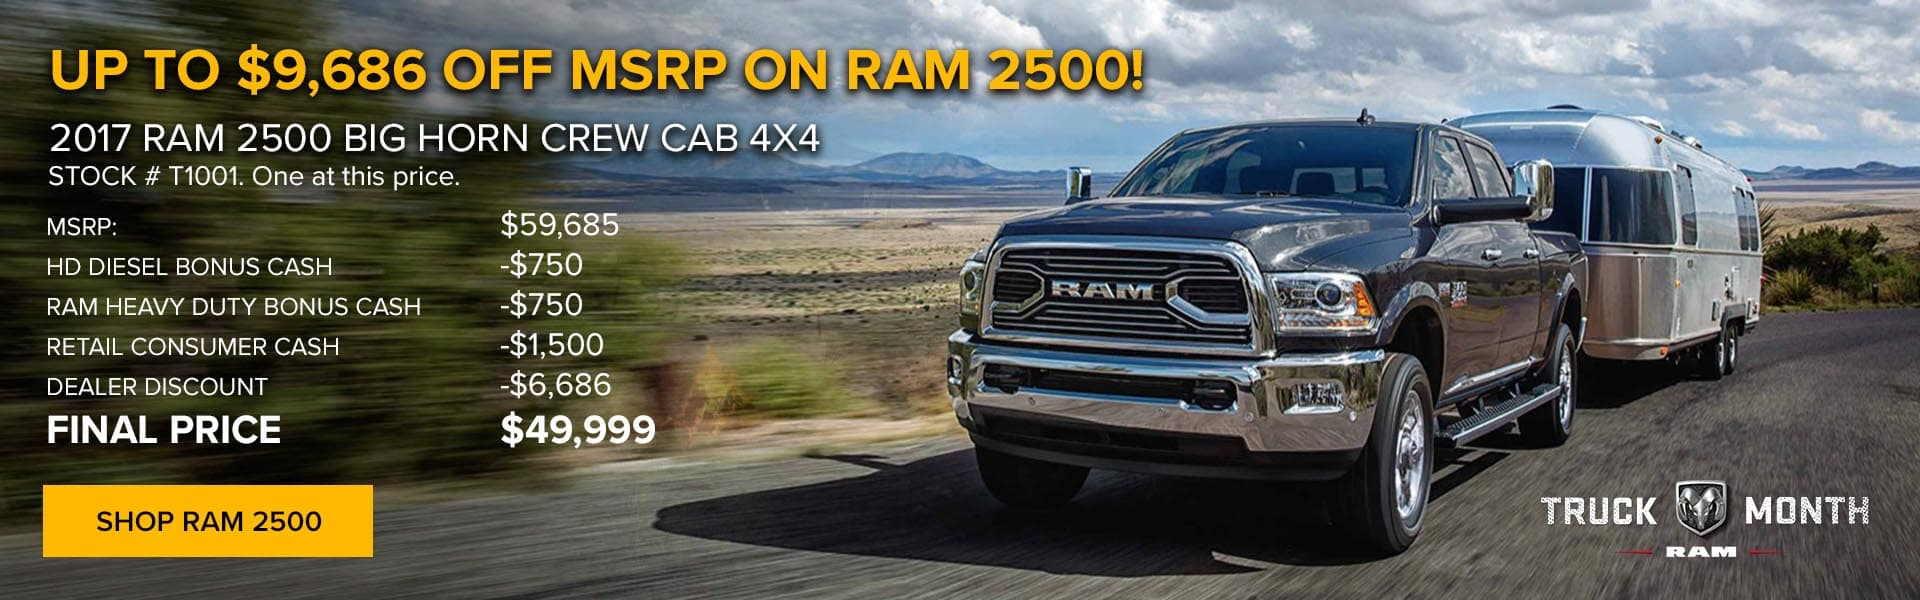 Up to $9,686 off RAM 2500 Big Horn at Newberg Ram Jeep Dodge